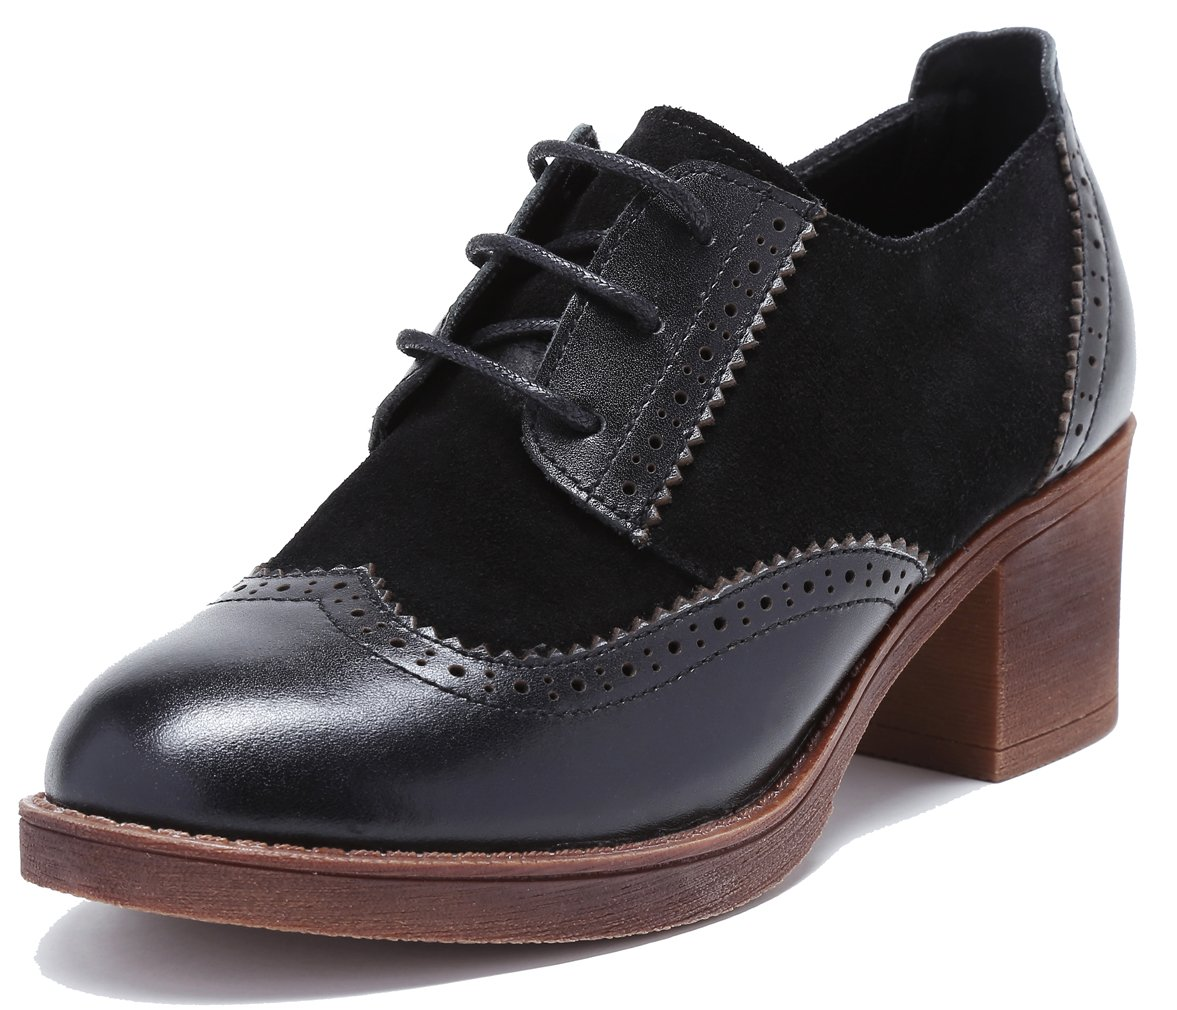 U-lite Ladys Perforated Lace-up Round-Toe Brouge Shoes, Multicolor Spring Pump Vintage Oxfords BLK8.5